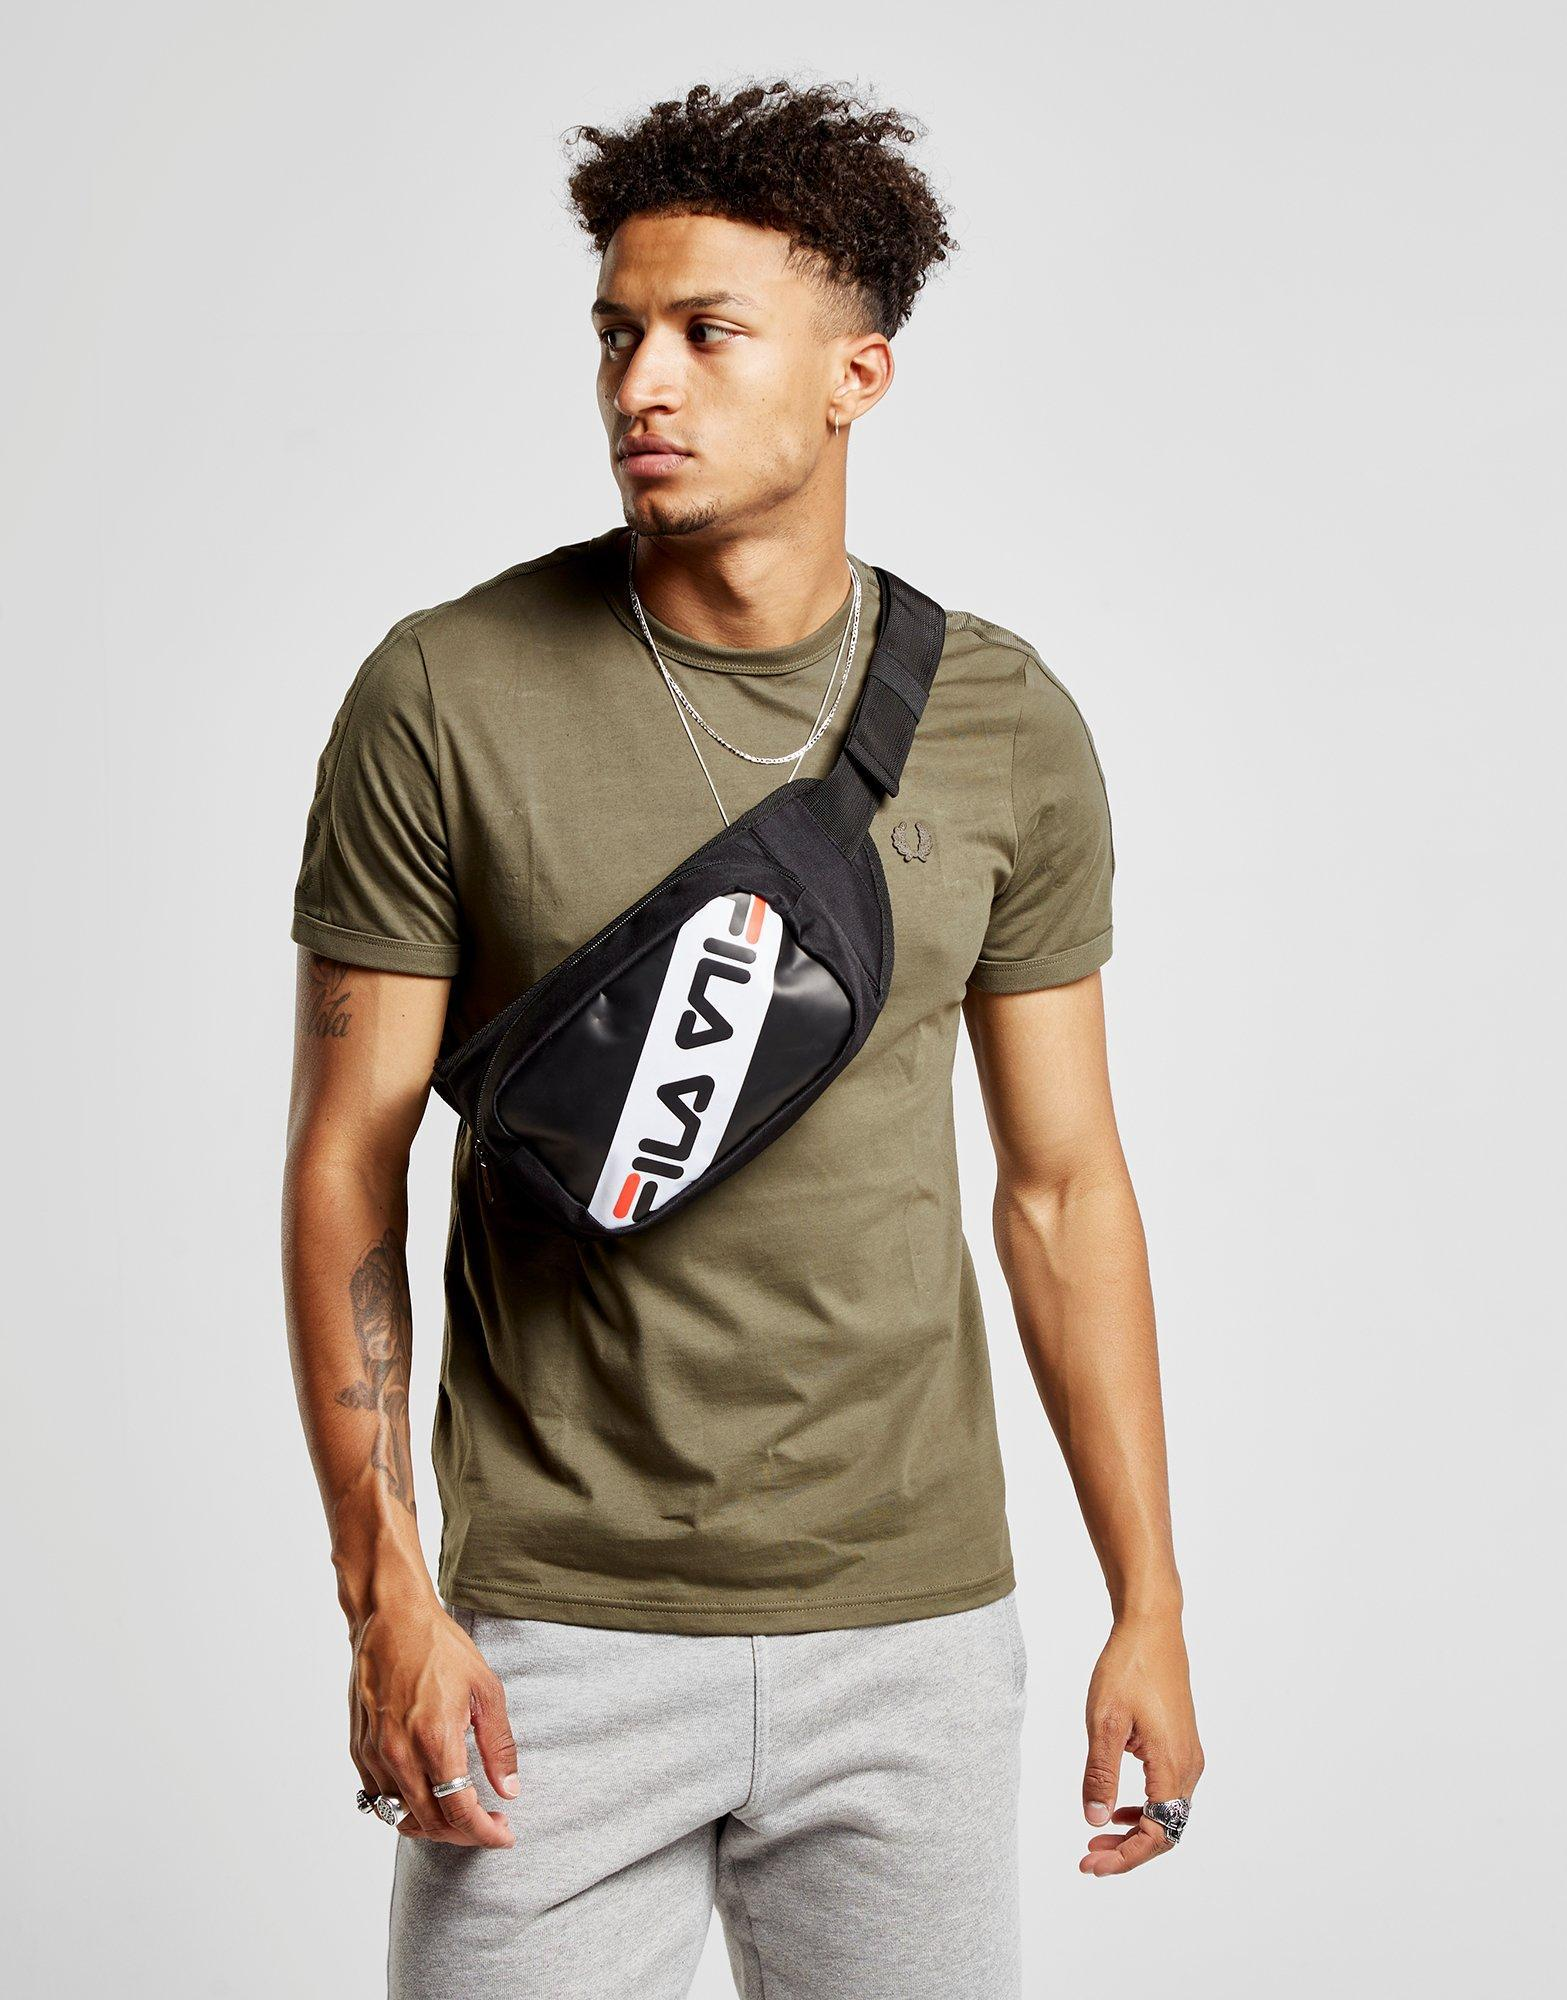 fila-BlackWhiteRed-Ola-Waist-Bag